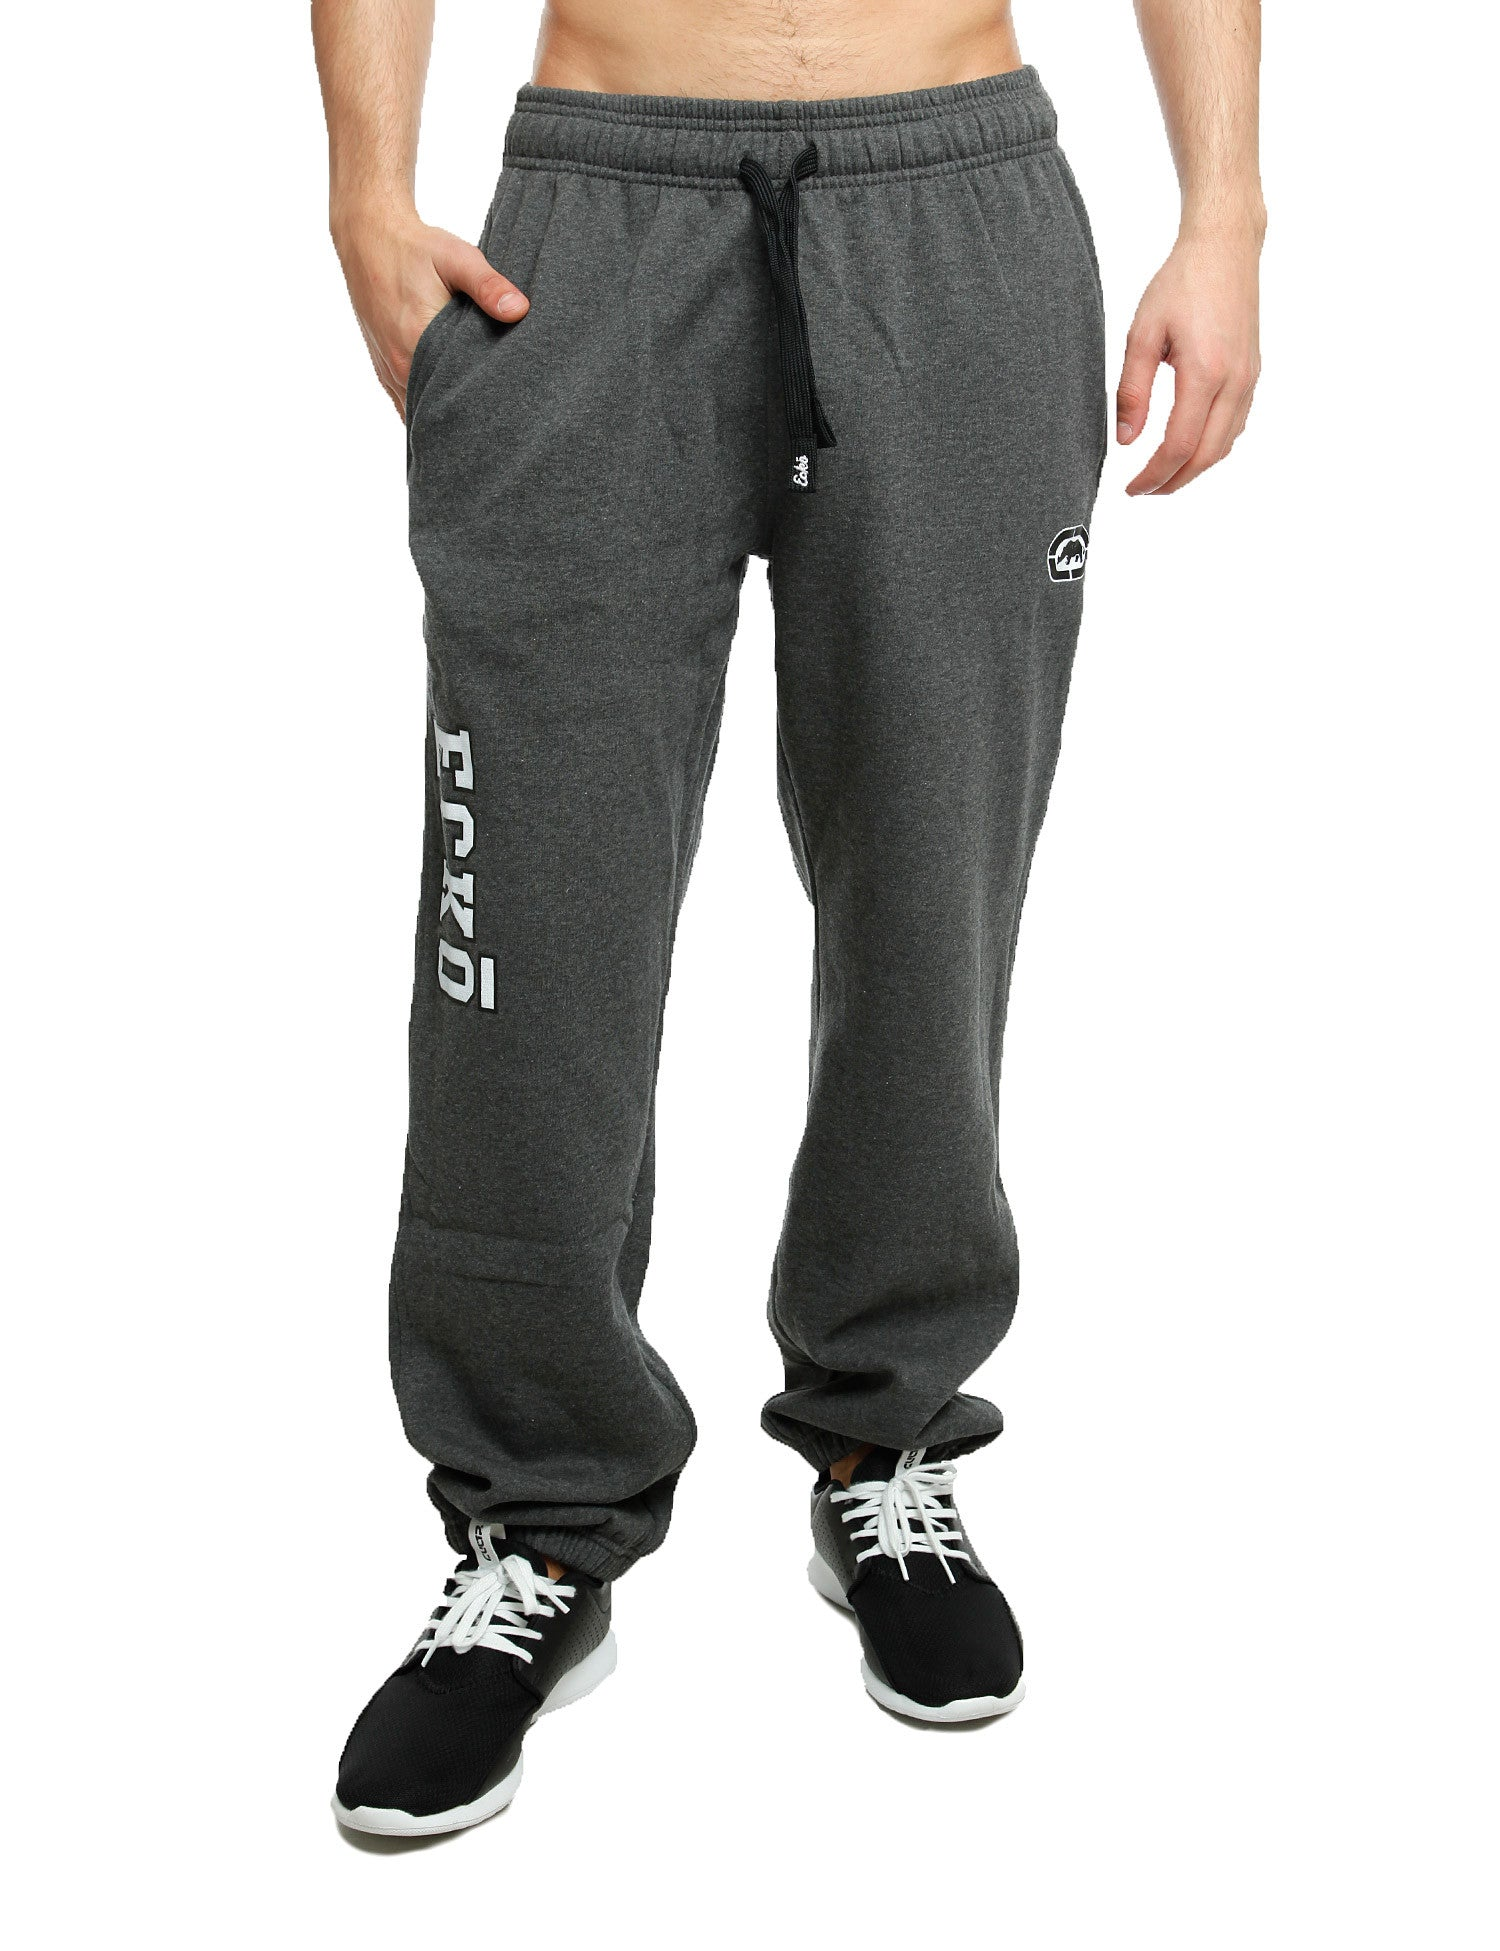 Image of Ecko Sweatpants Dagenham Grey